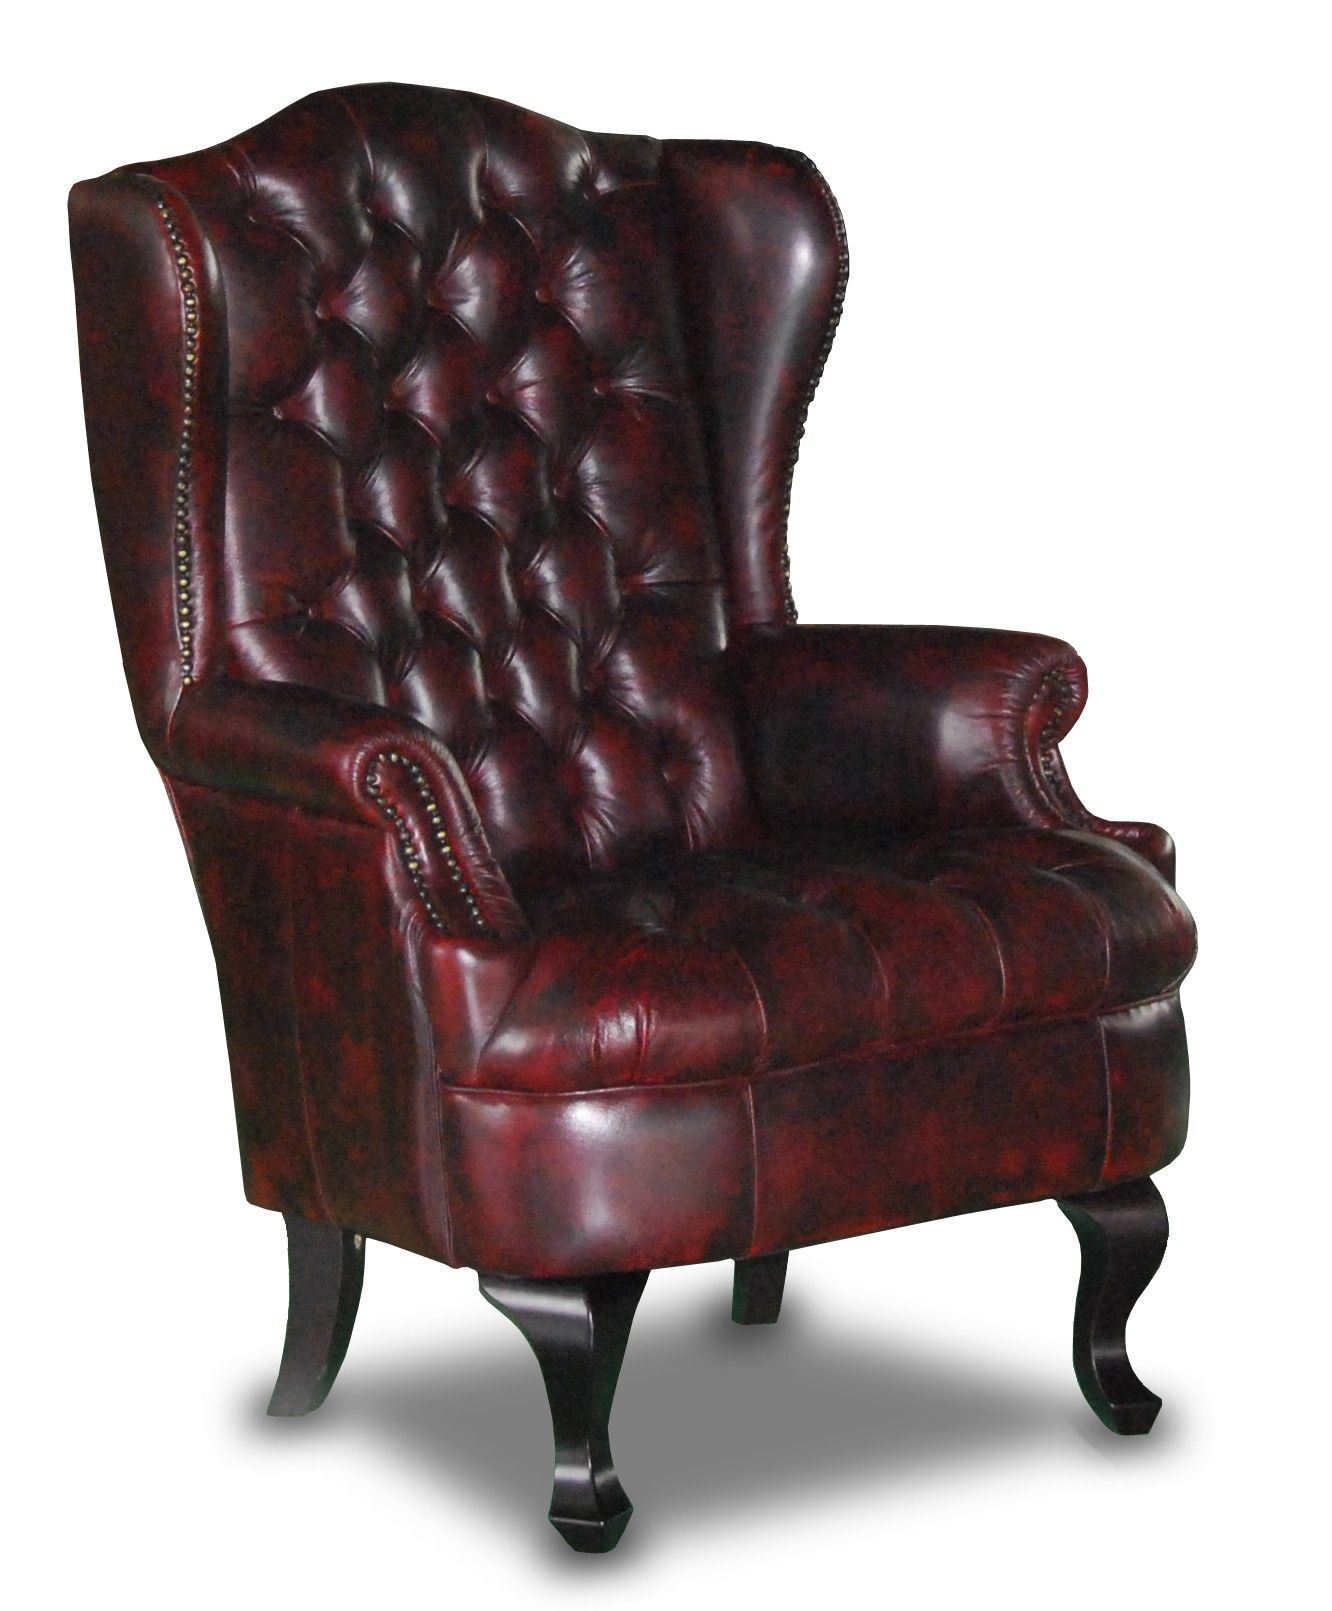 The Nadia Red Wing Back Chair Is Available In Many Colours But Looks Great  In The Traditional Red Leather. Call Now To Discuss This Great Chair.